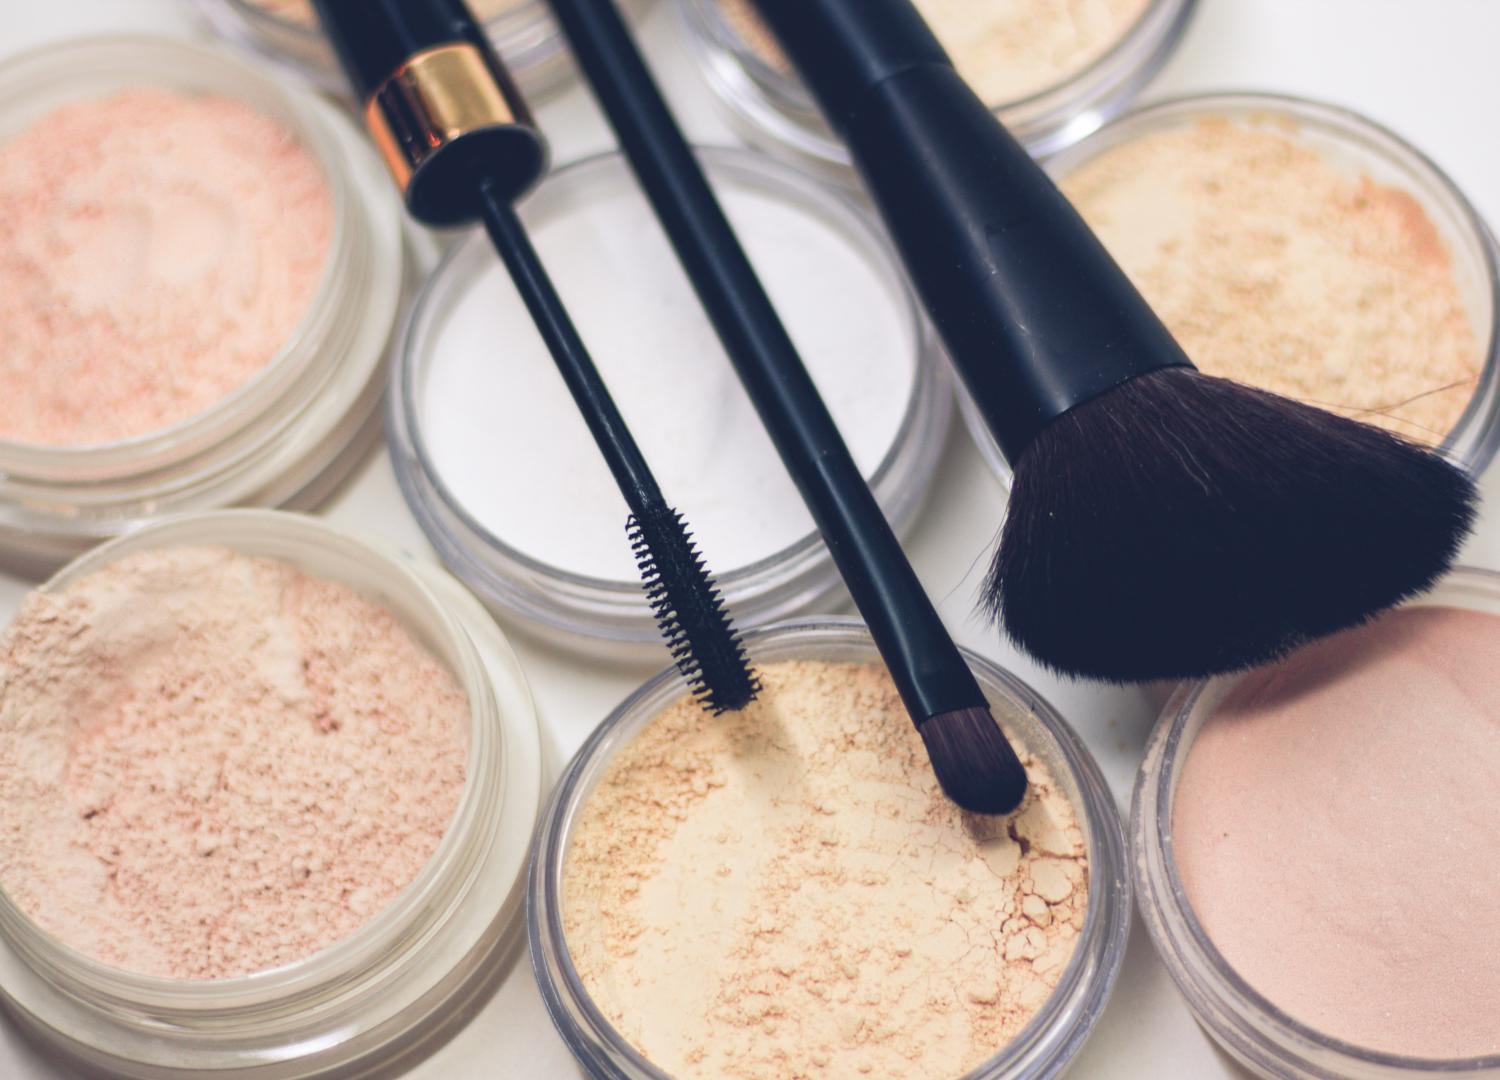 Organic Foundations For All Skin Types